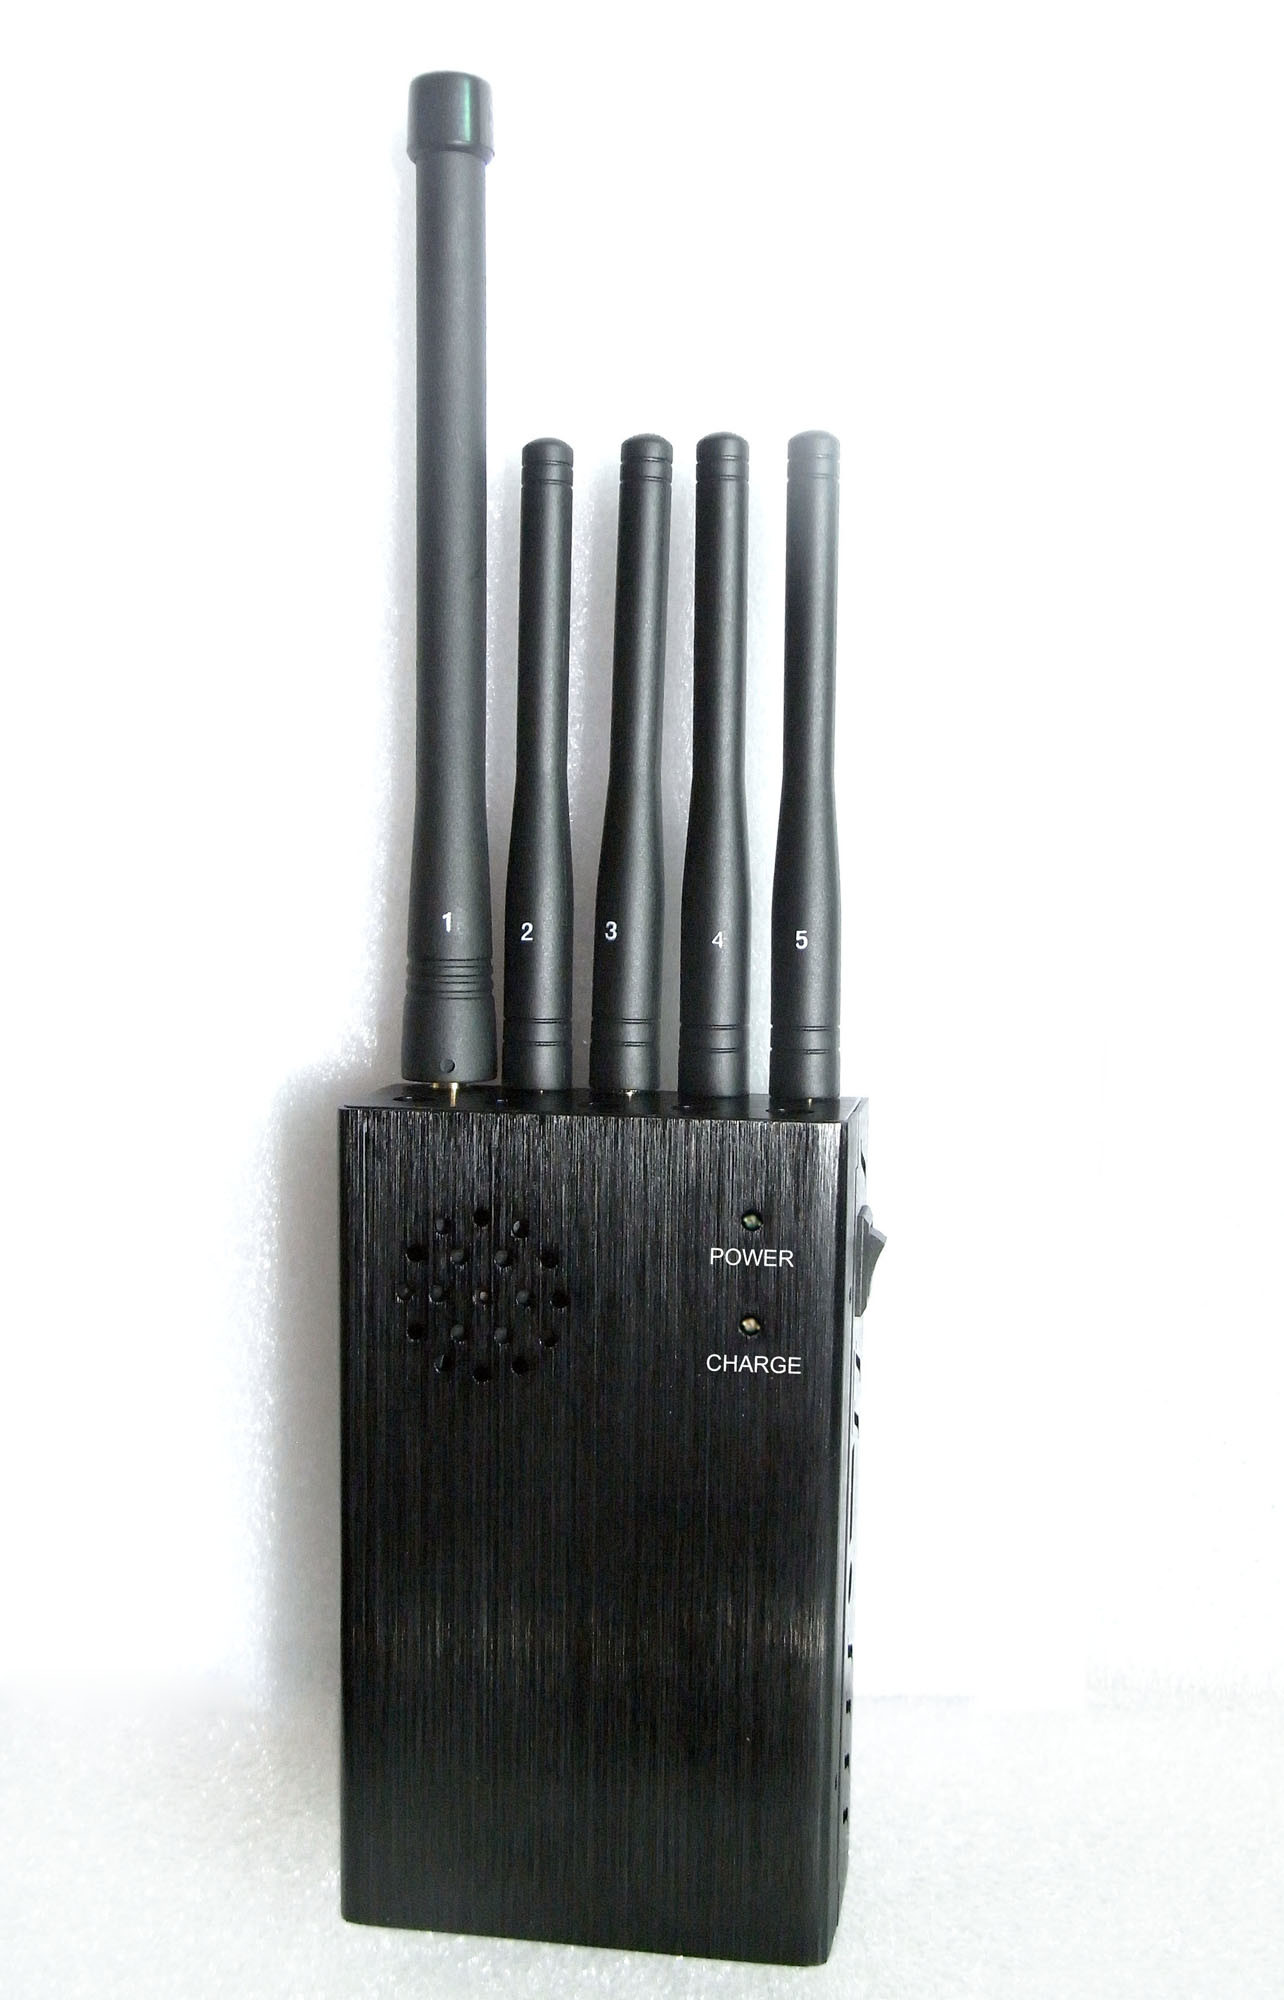 jammers houston vs boston - China New 5 Antenna 3G 4glte Wimax Wireless Signal Jammers, High Power Handheld Portable Cellphone Wireless Jammer - China 5 Band Signal Blockers, Five Antennas Jammers